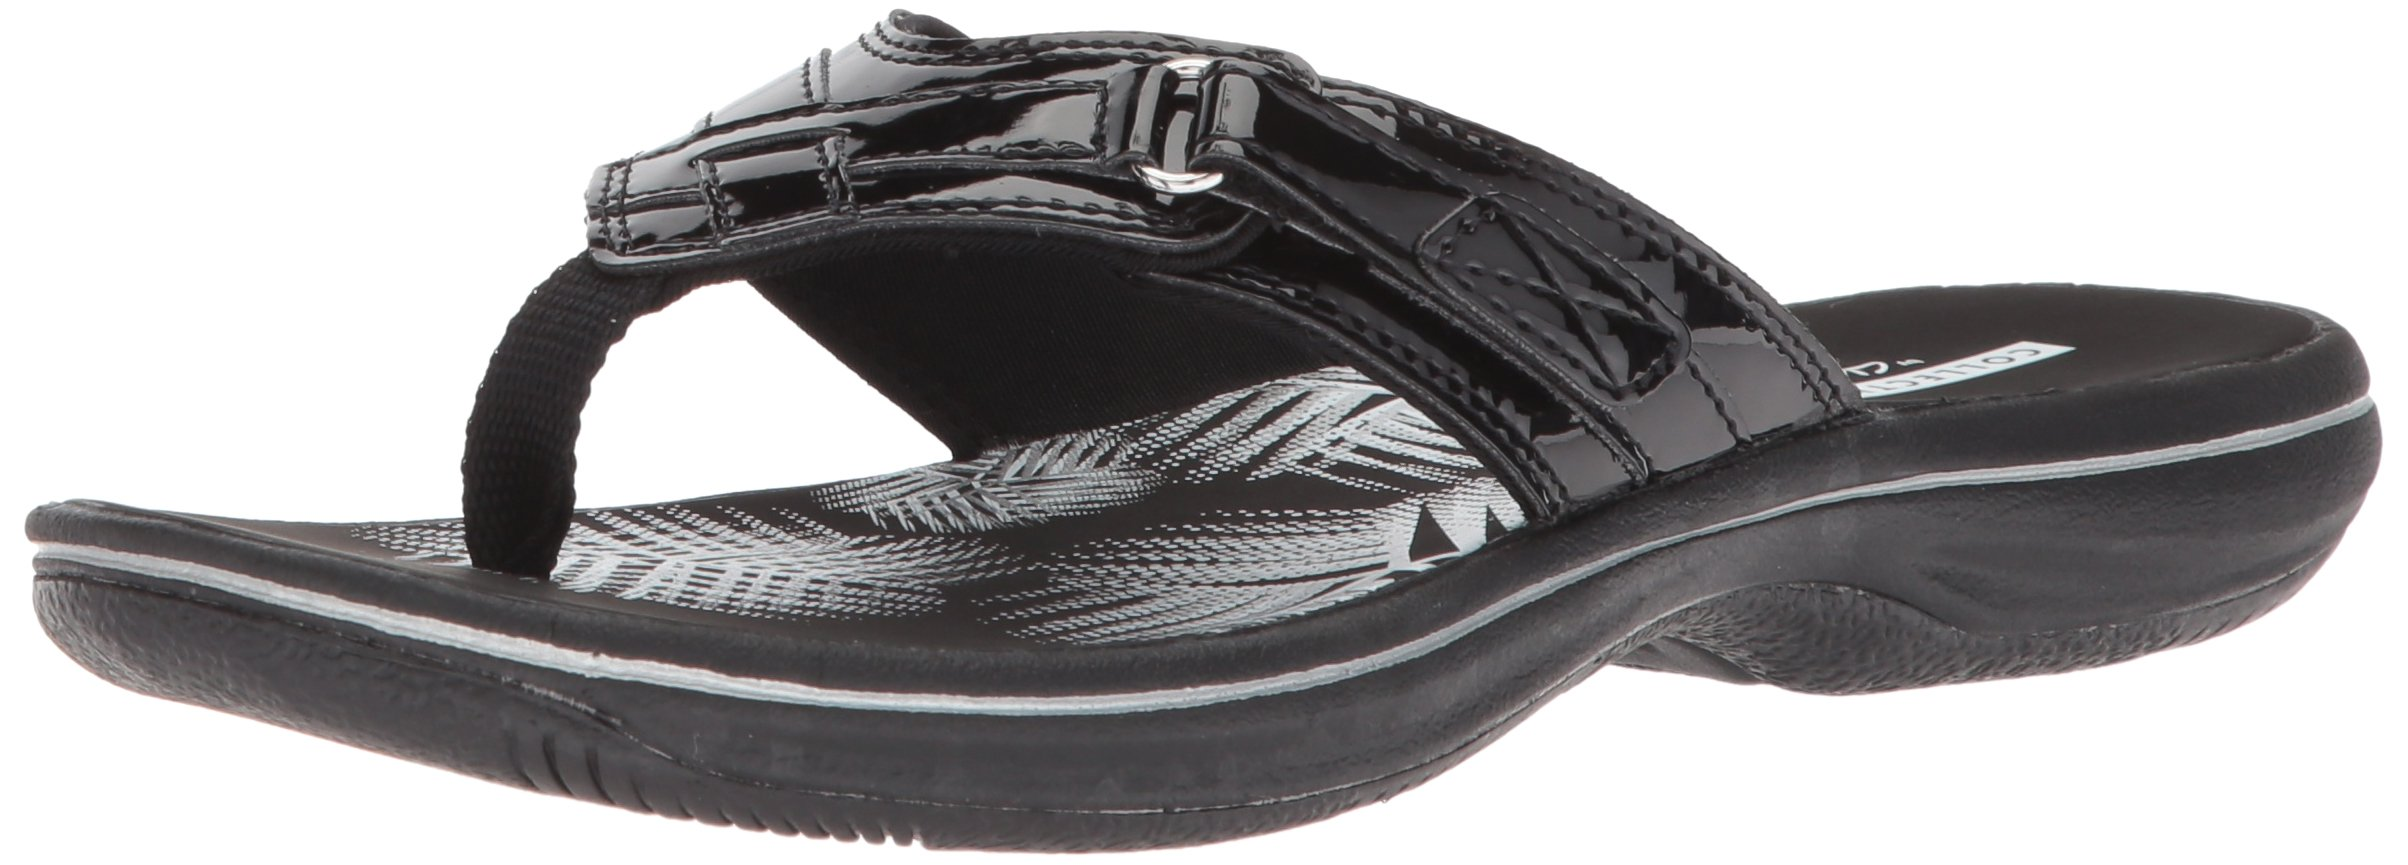 91a291a13521 Best Rated in Women's Flip-Flops & Helpful Customer Reviews - Amazon.com